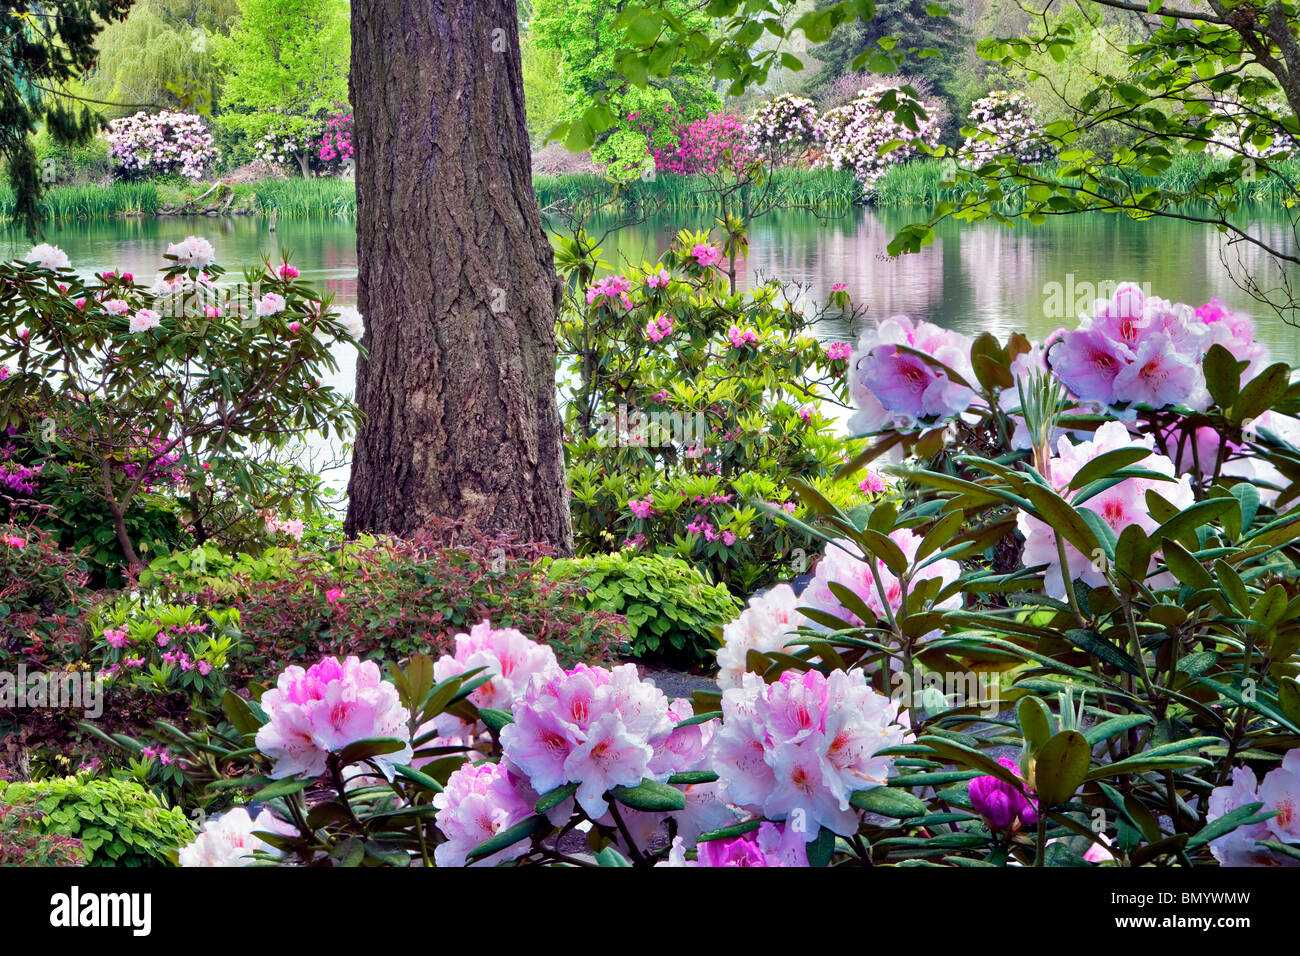 Rhododendrons in bloom with pond at Crystal Springs Rhododendron Gardens, Oregon Stock Photo